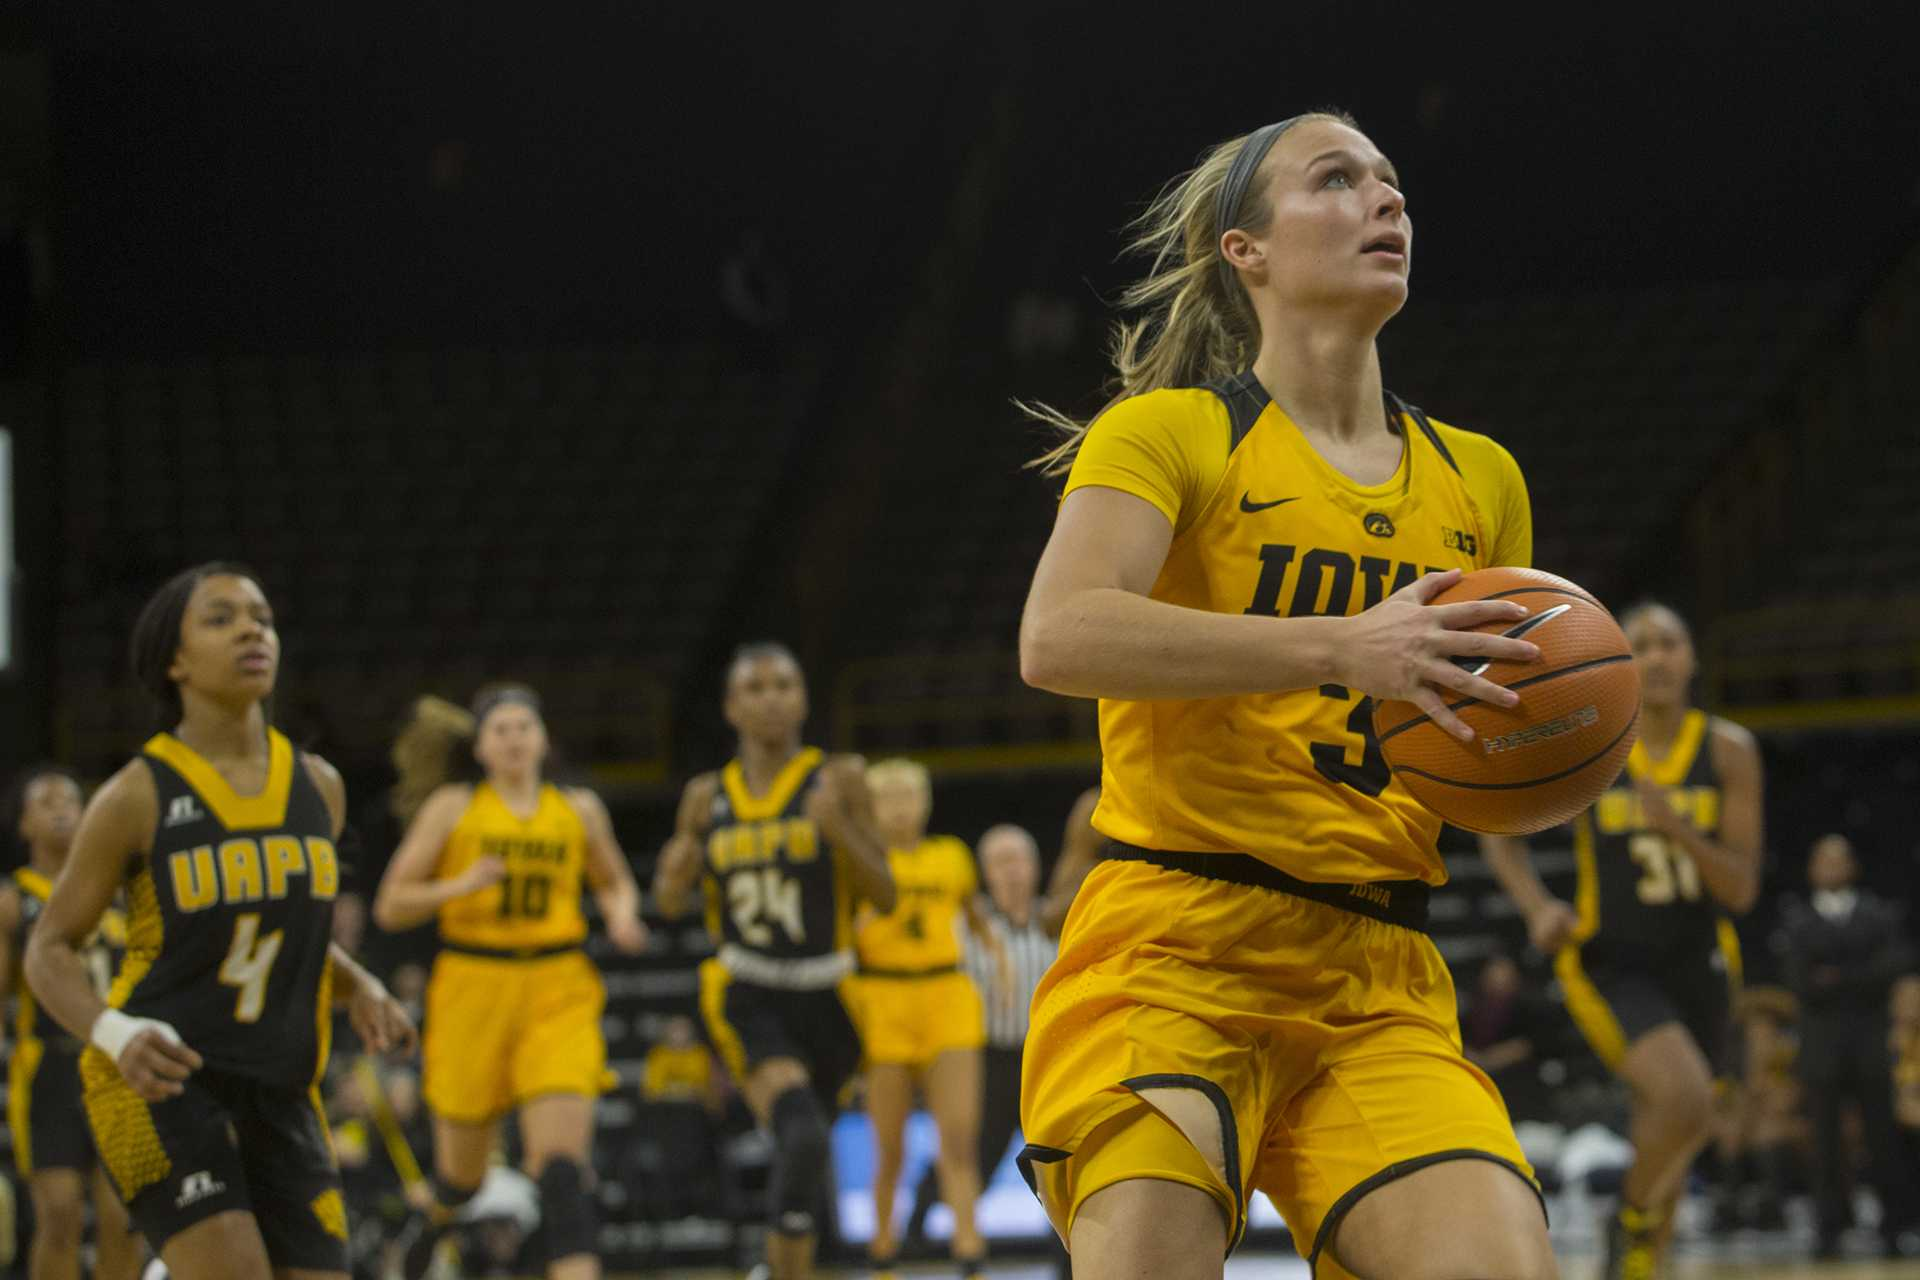 Iowa guard Makenzie Meyer looks to the hoop during the Iowa/Arkansas-Pine Bluff basketball game in Carver-Hawkeye Arena on Saturday, Dec. 9, 2017. The Hawkeyes defeated the Golden Lions, 85-45.